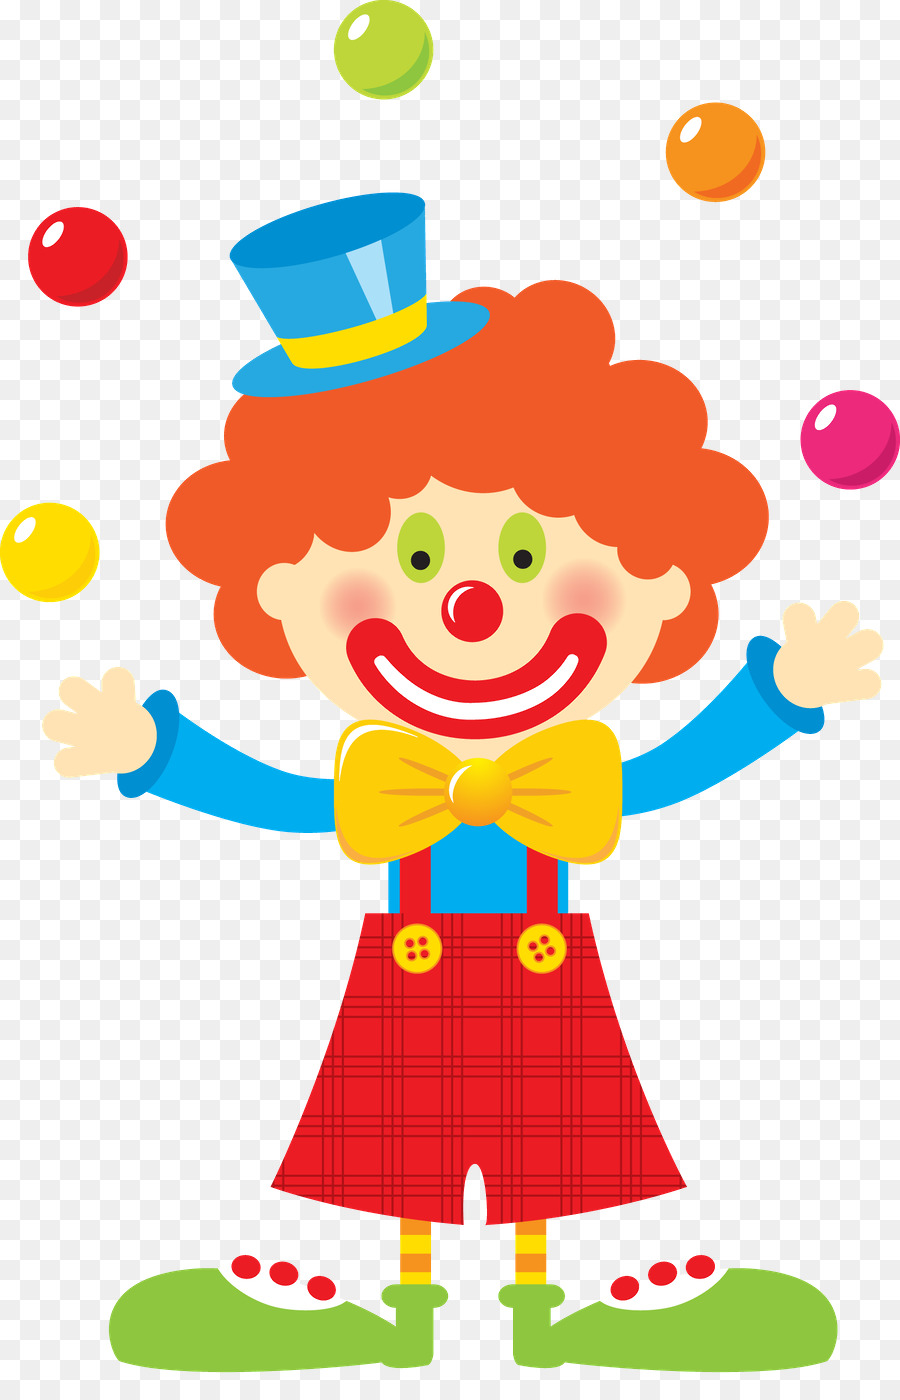 Circus Baby clipart.